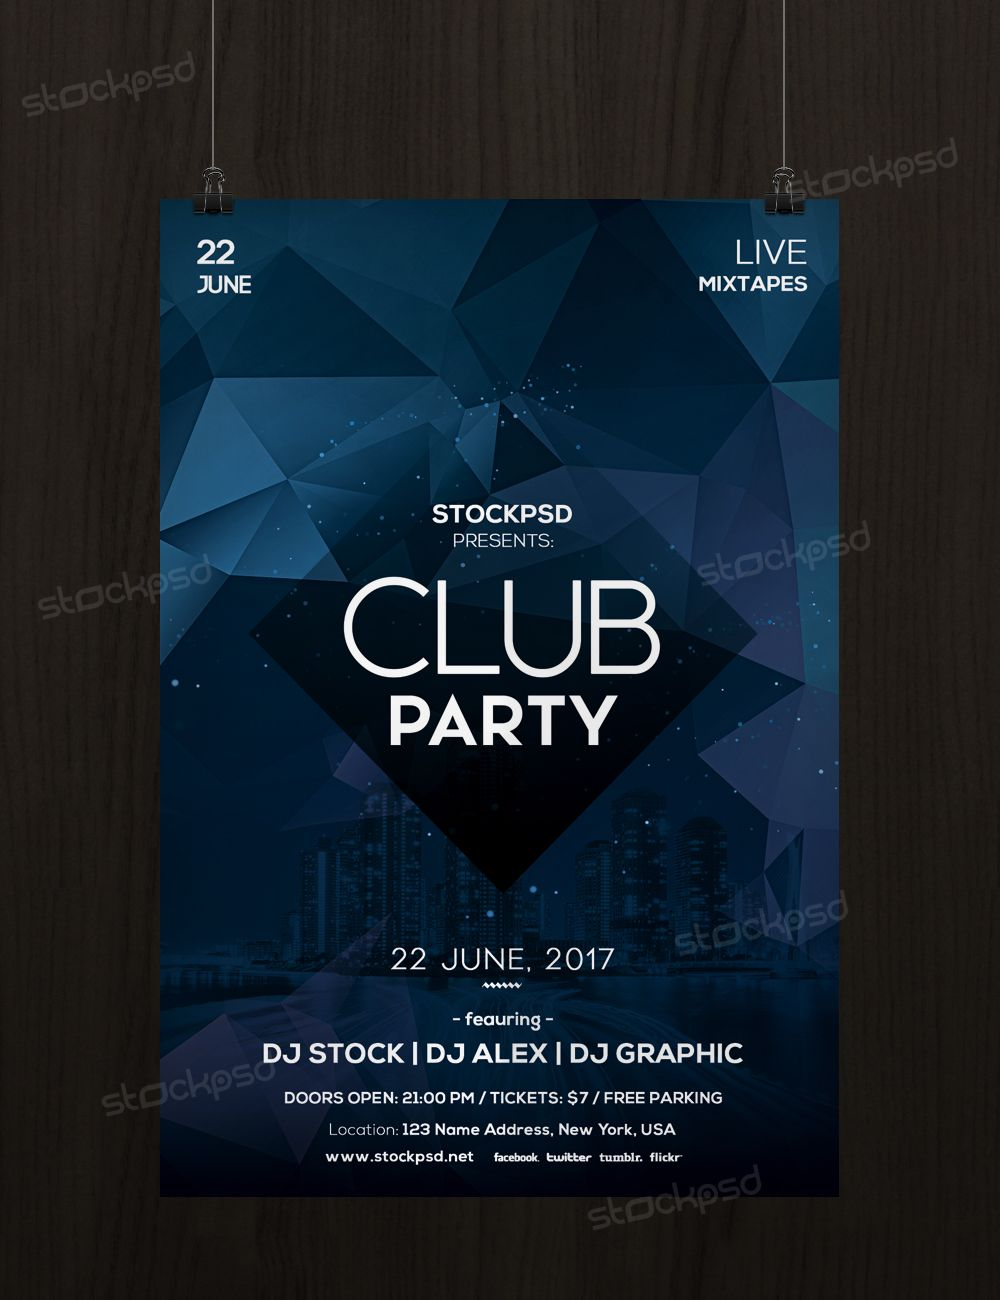 Club Party  Free Minimal Psd Flyer Template  Psd Flyers